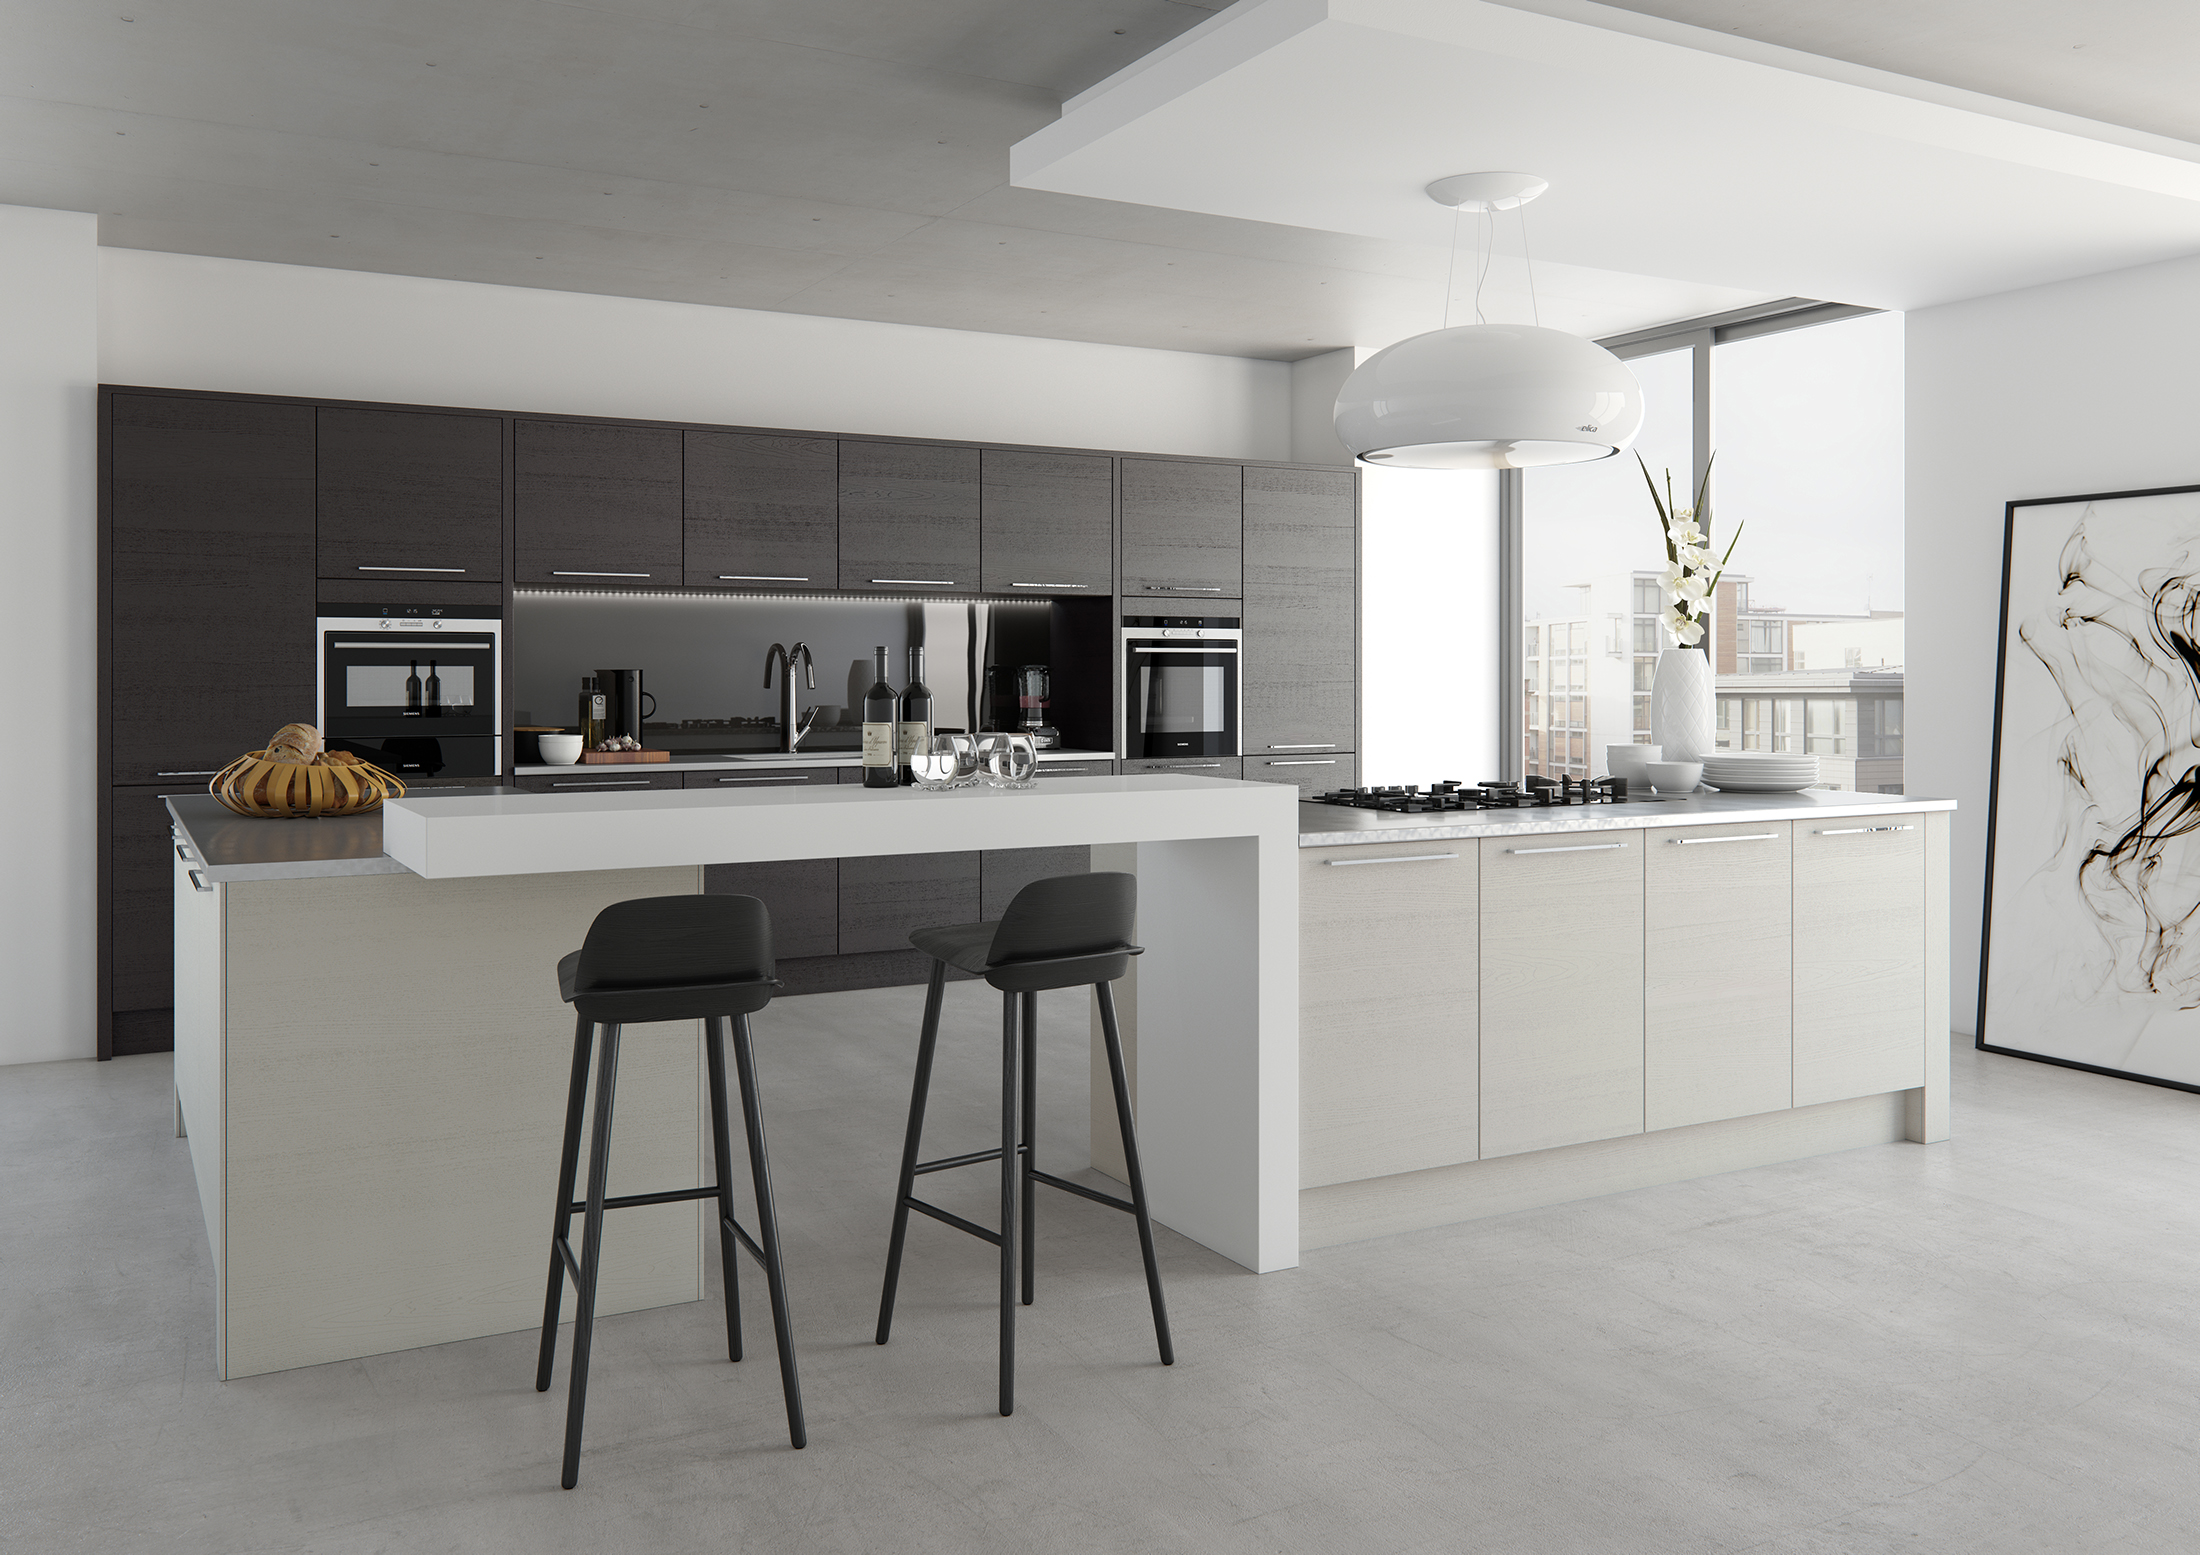 Tavola - Stained Hacienda Black With Painted Light Grey